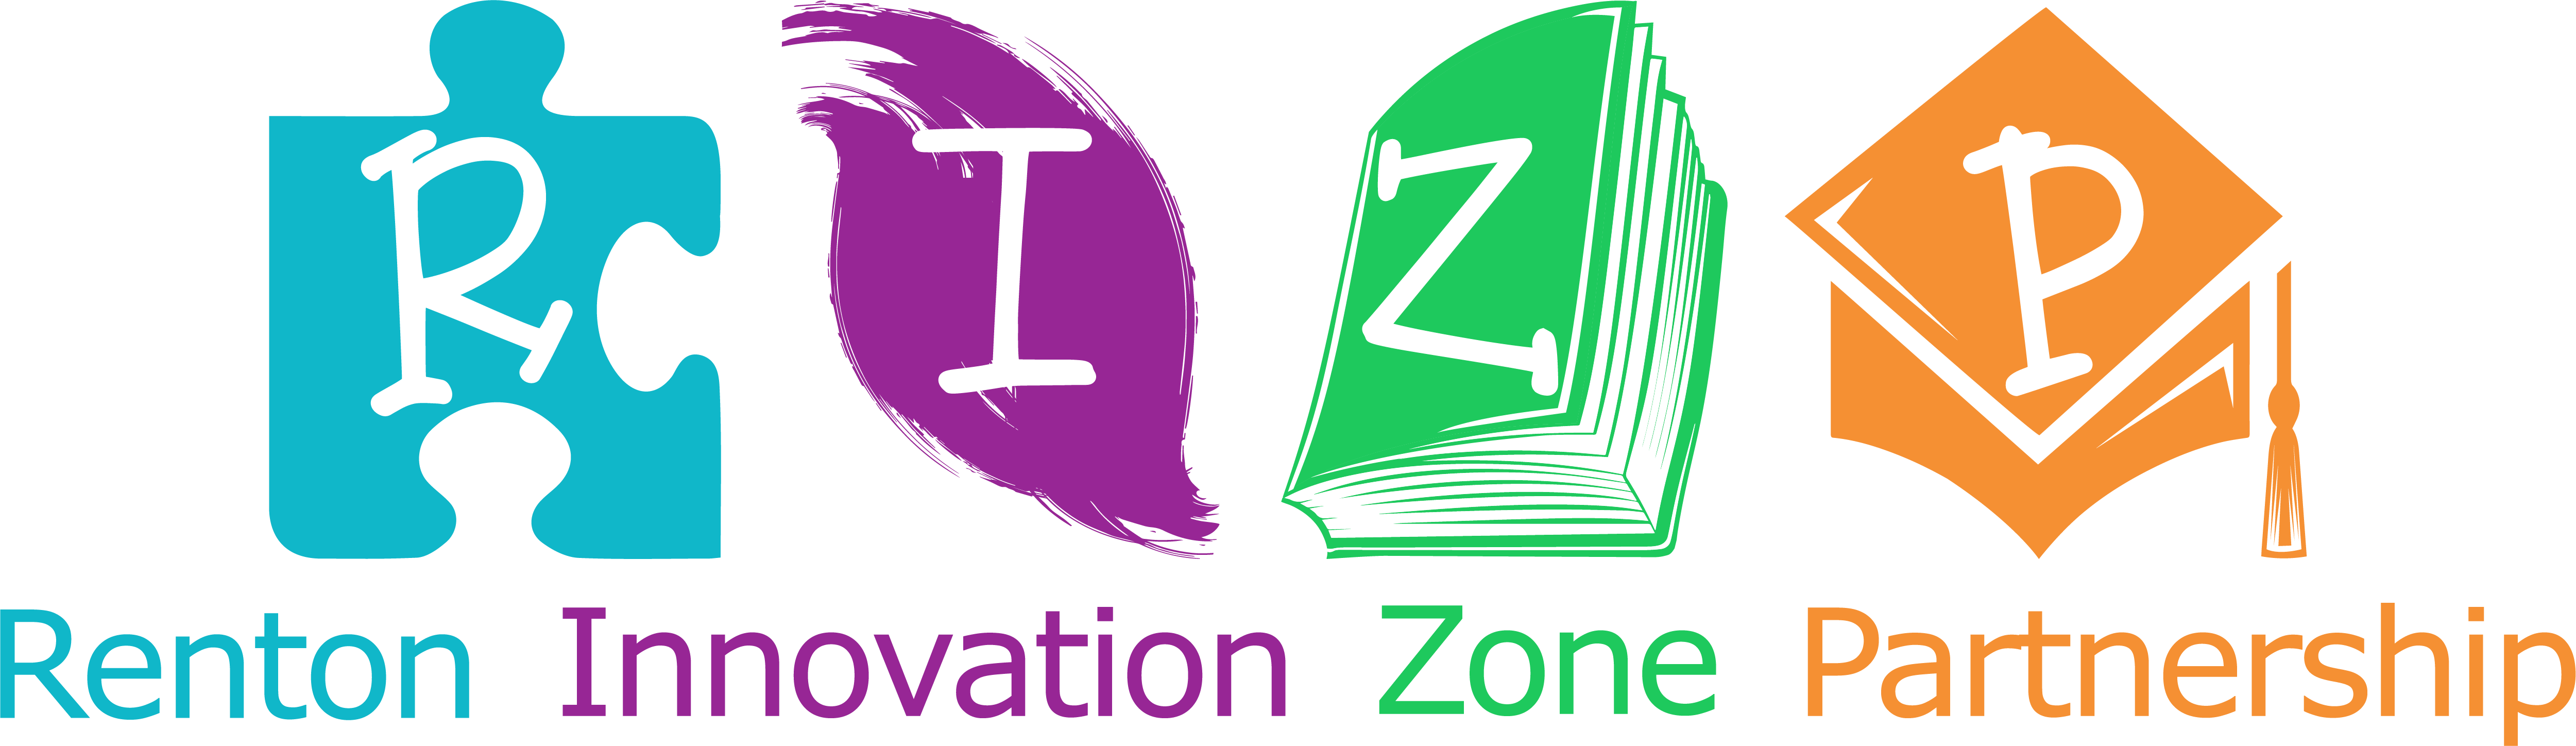 Renton Innovation Zone Partnership